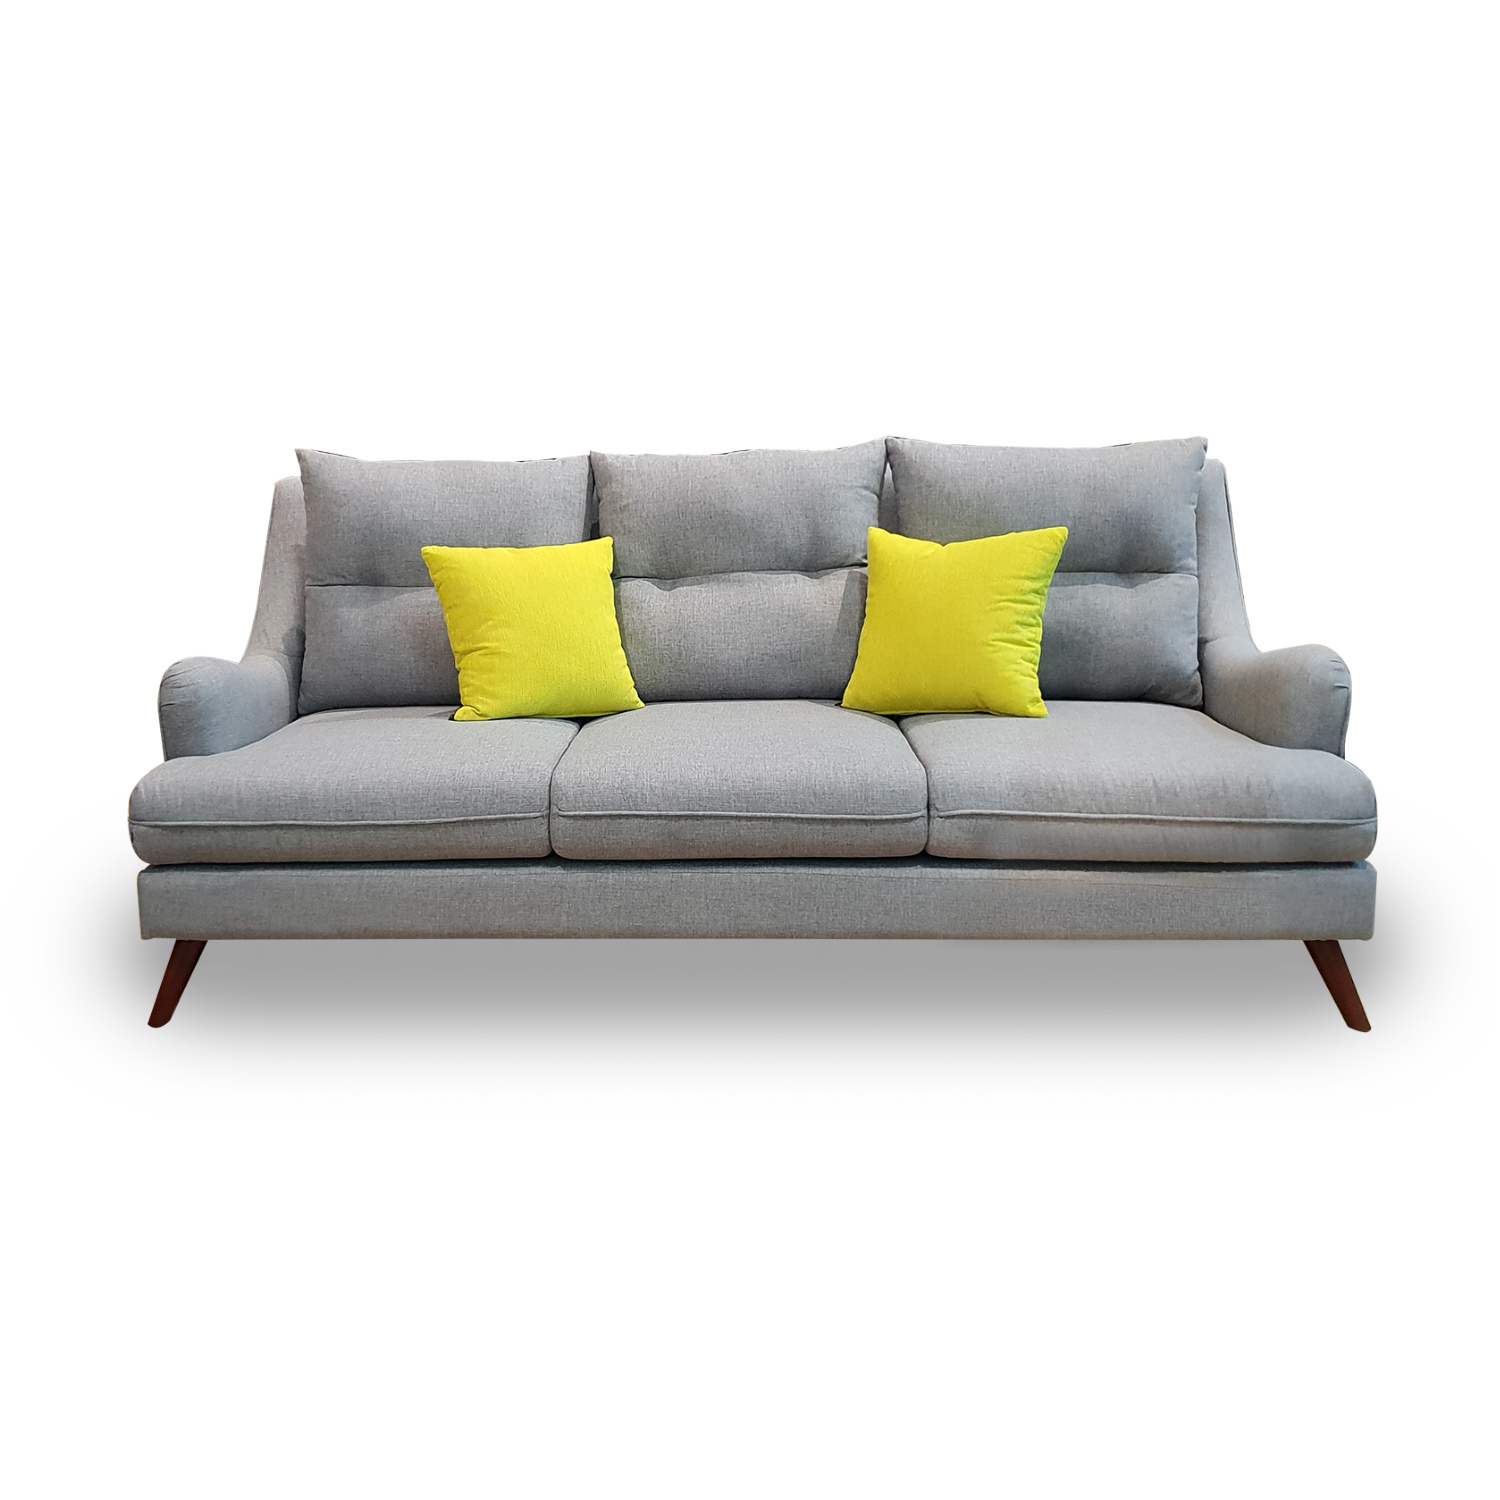 Sofa HD2473 (1, 2, 3 Seater)